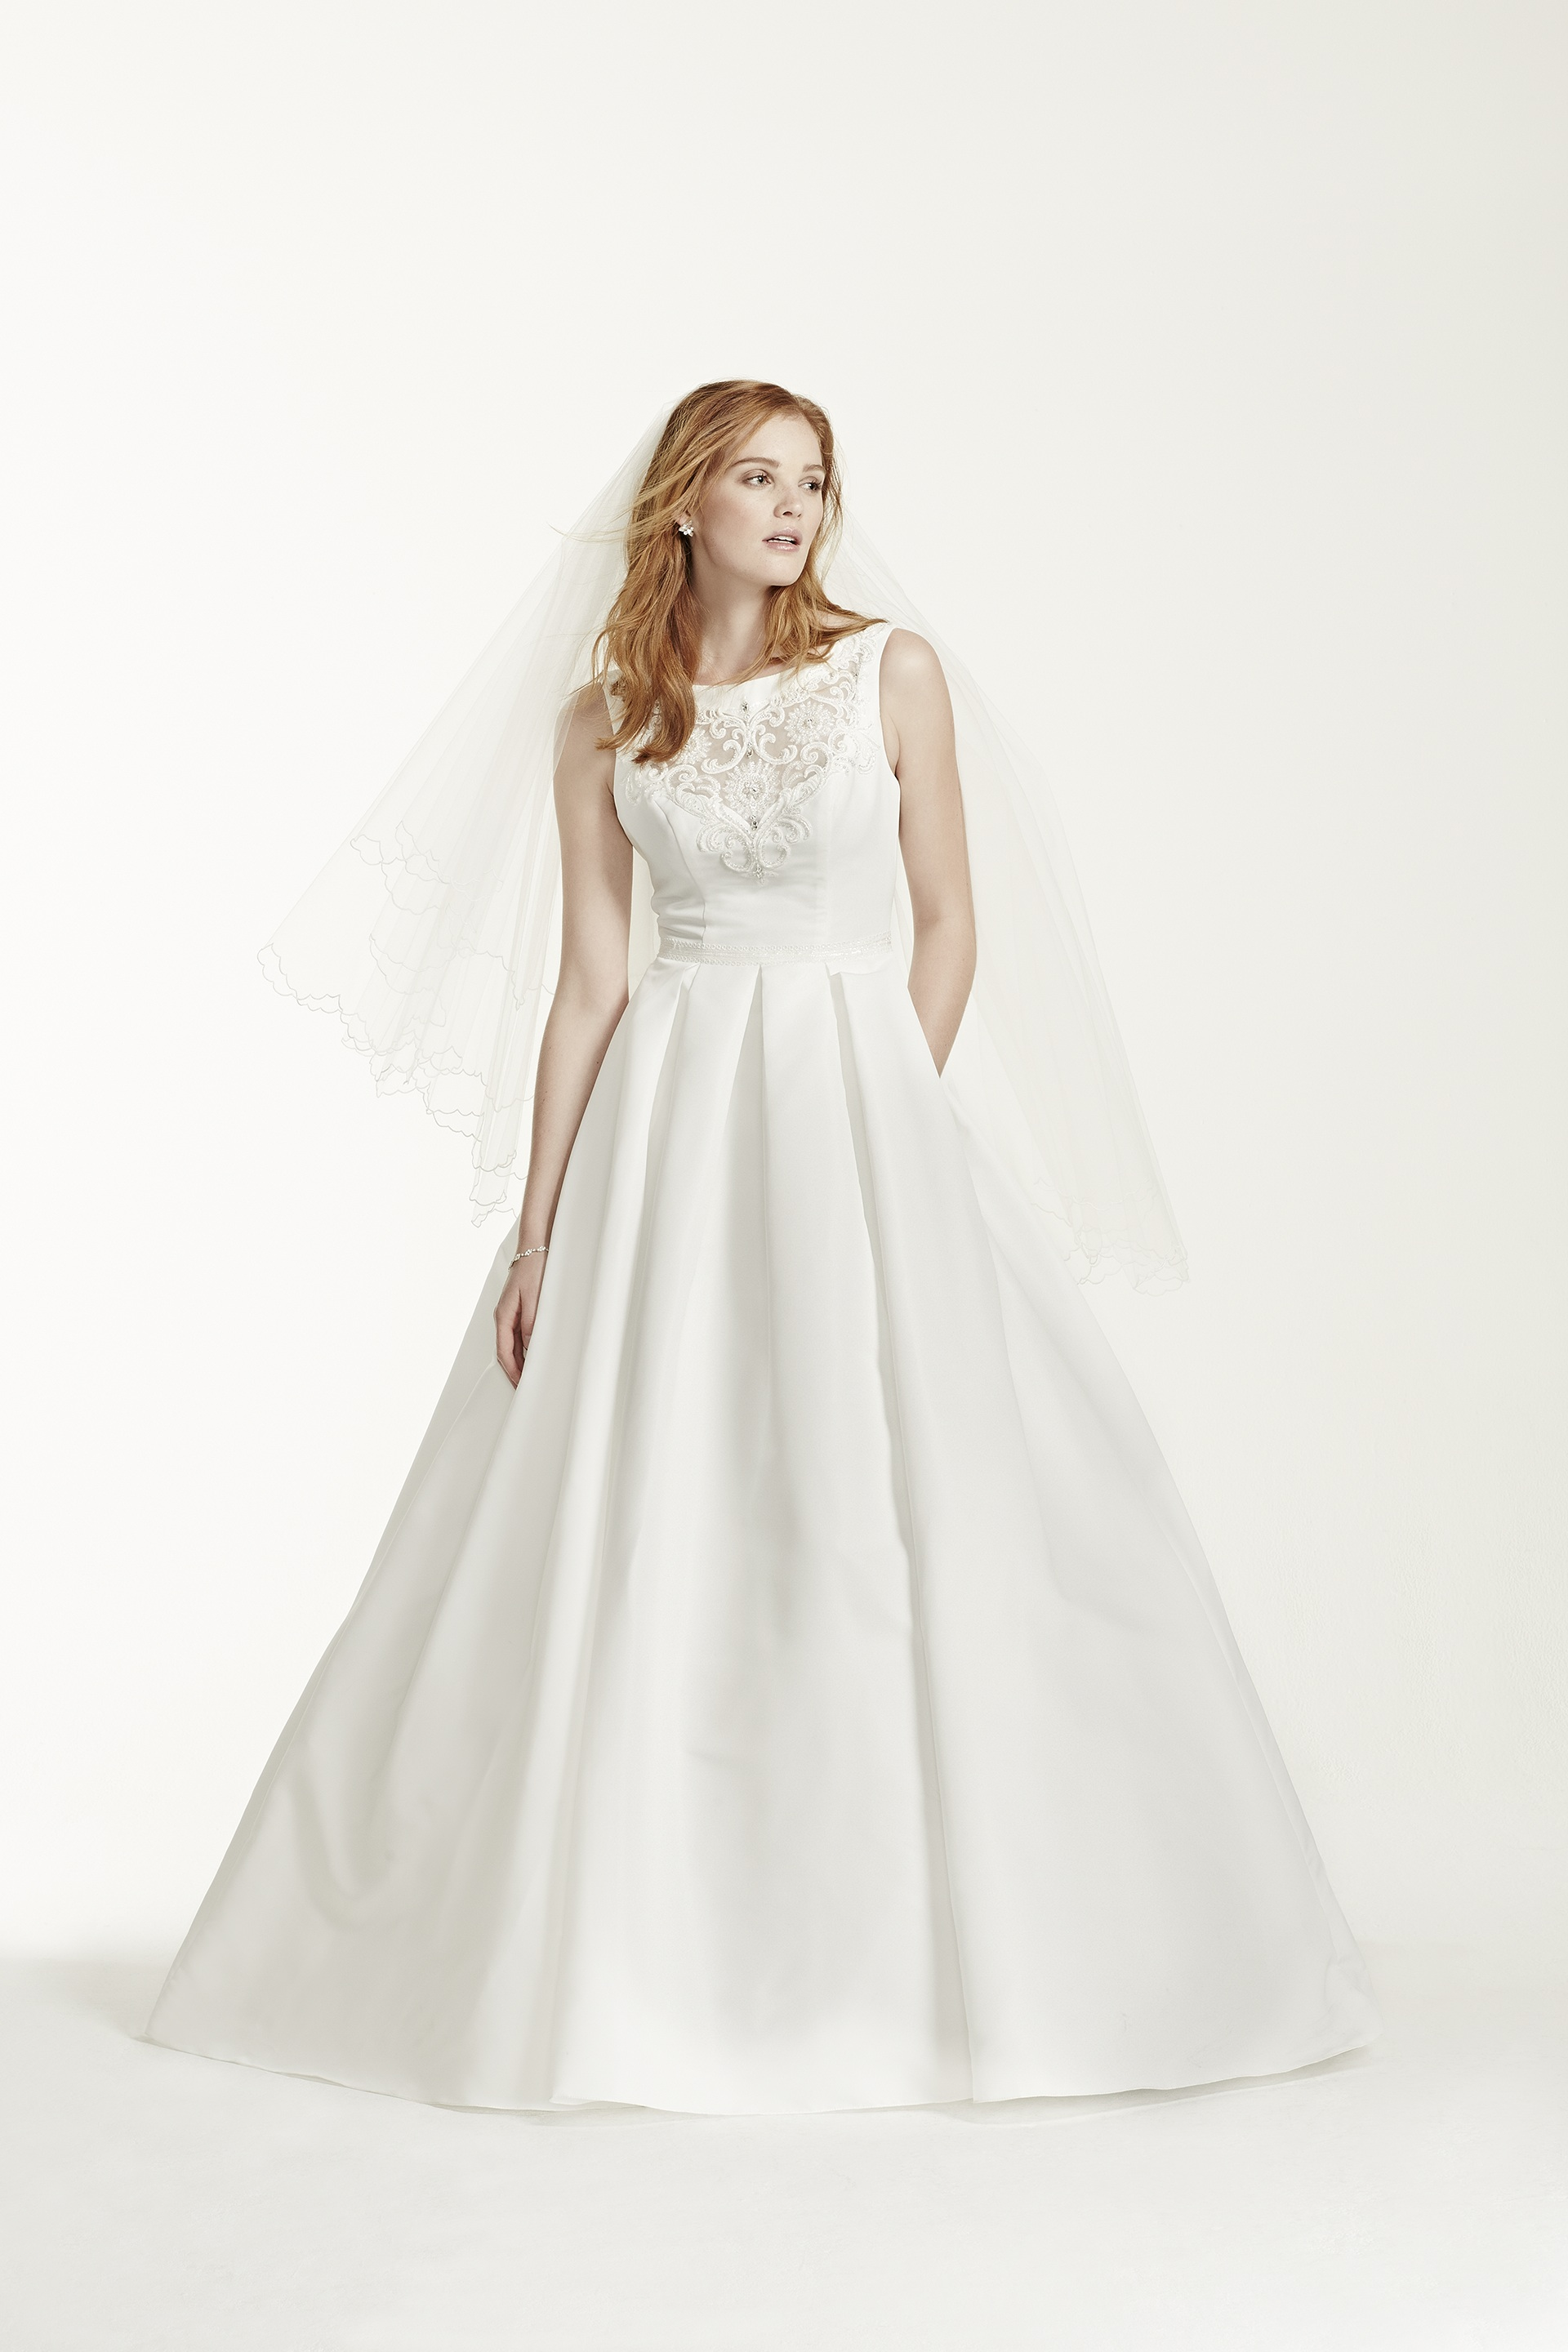 Bridalwear luxe for less with david 39 s bridal for Wedding dresses less than 300